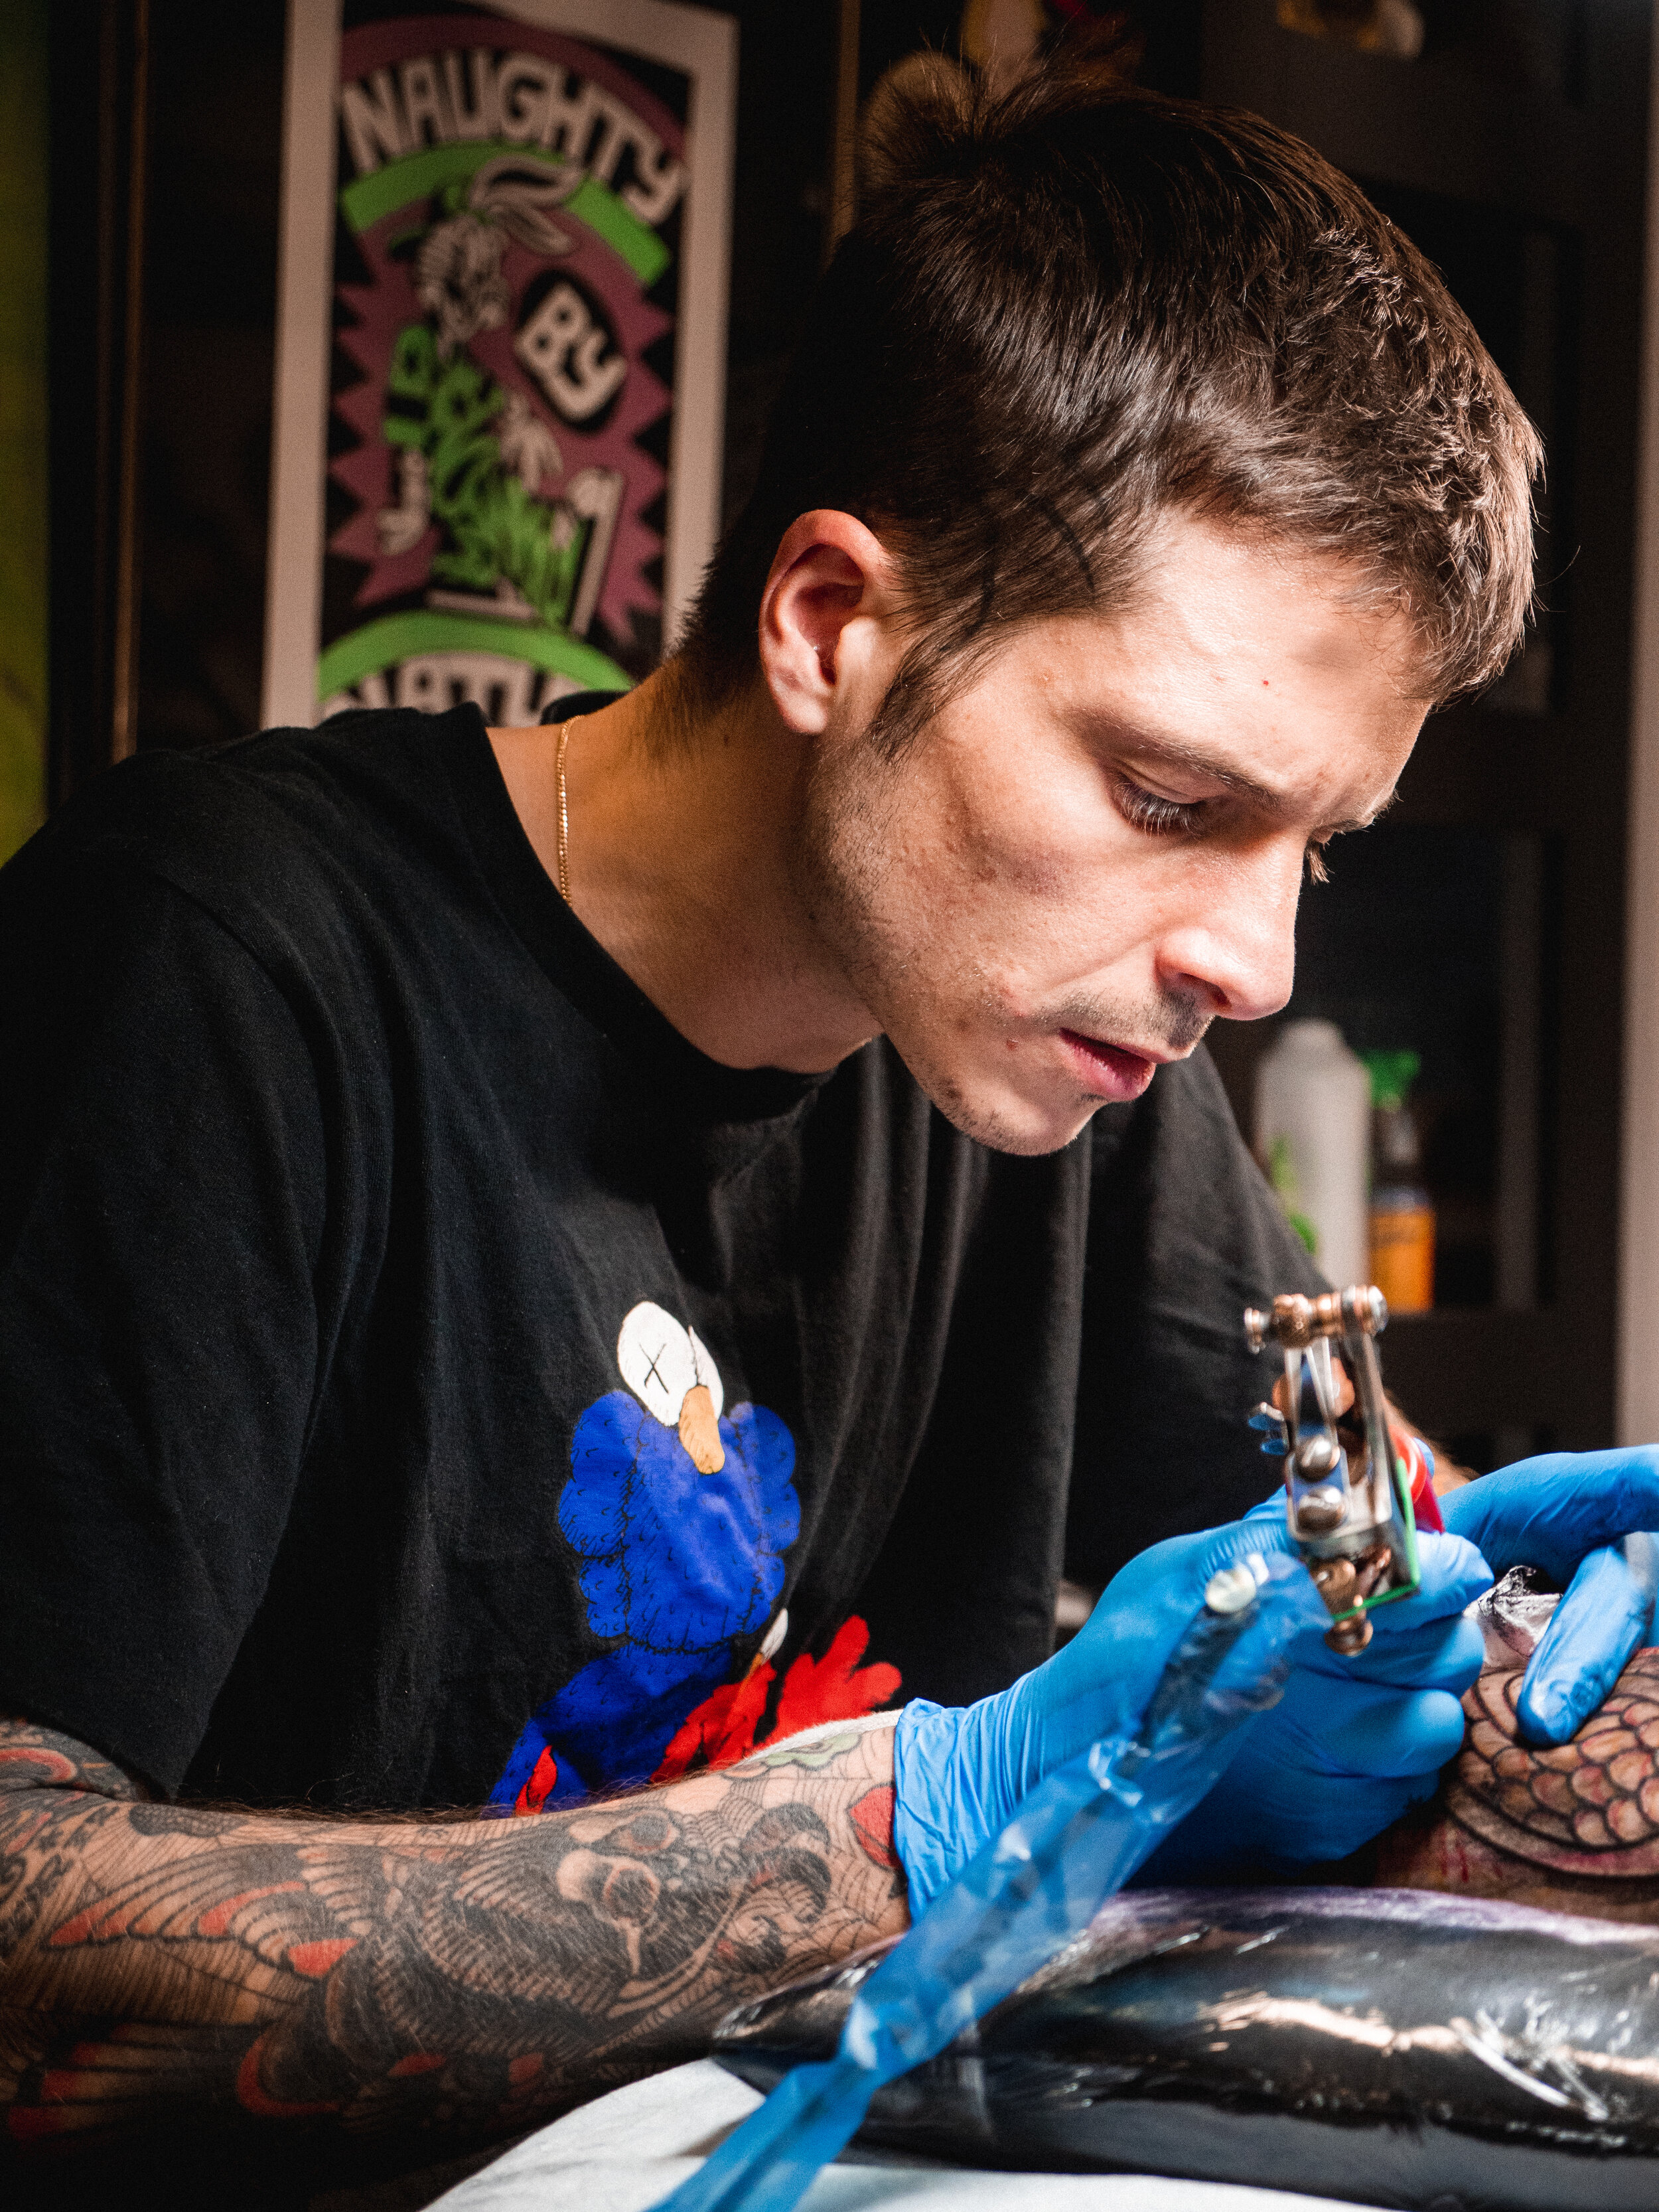 - Teide has been tattooing since 2008 and describes his work as 'Traditional Psychedelic.'Follow Teide on Instagram